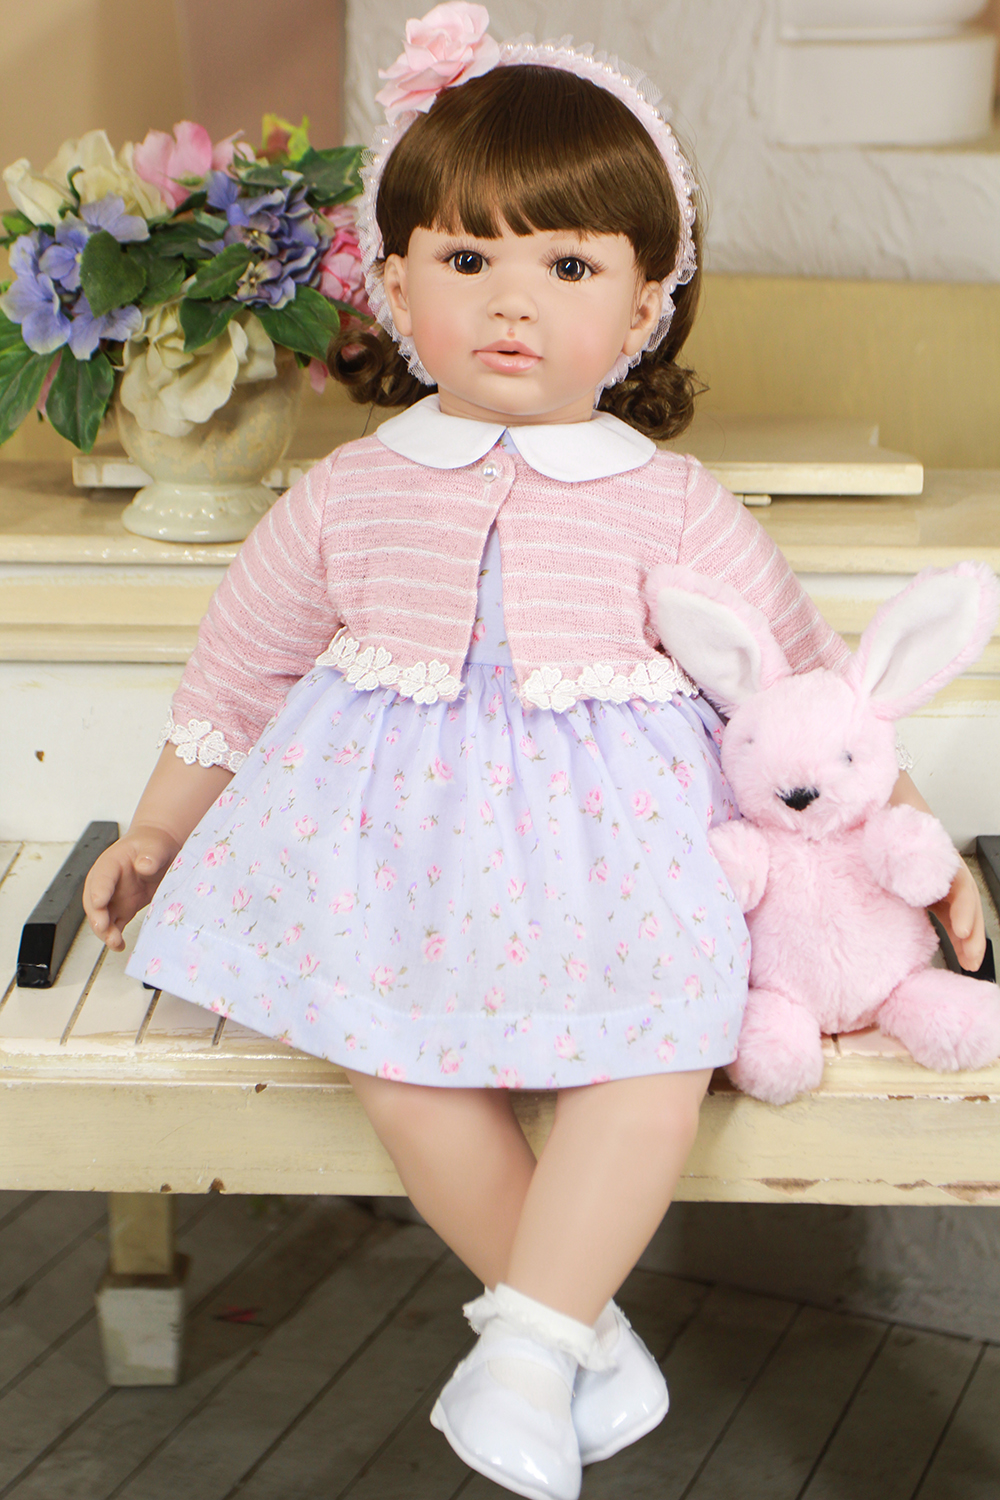 Short Curly Hair Doll Silicone Reborn Baby Girl Doll Lifelike Toddler Princess Girl Doll Toys for Sale Girls Best Birthday Gifts 52cm shoulder length hair reborn toddler baby girl doll smling princess girl doll in flower dress girls toys birthday xmas gifts